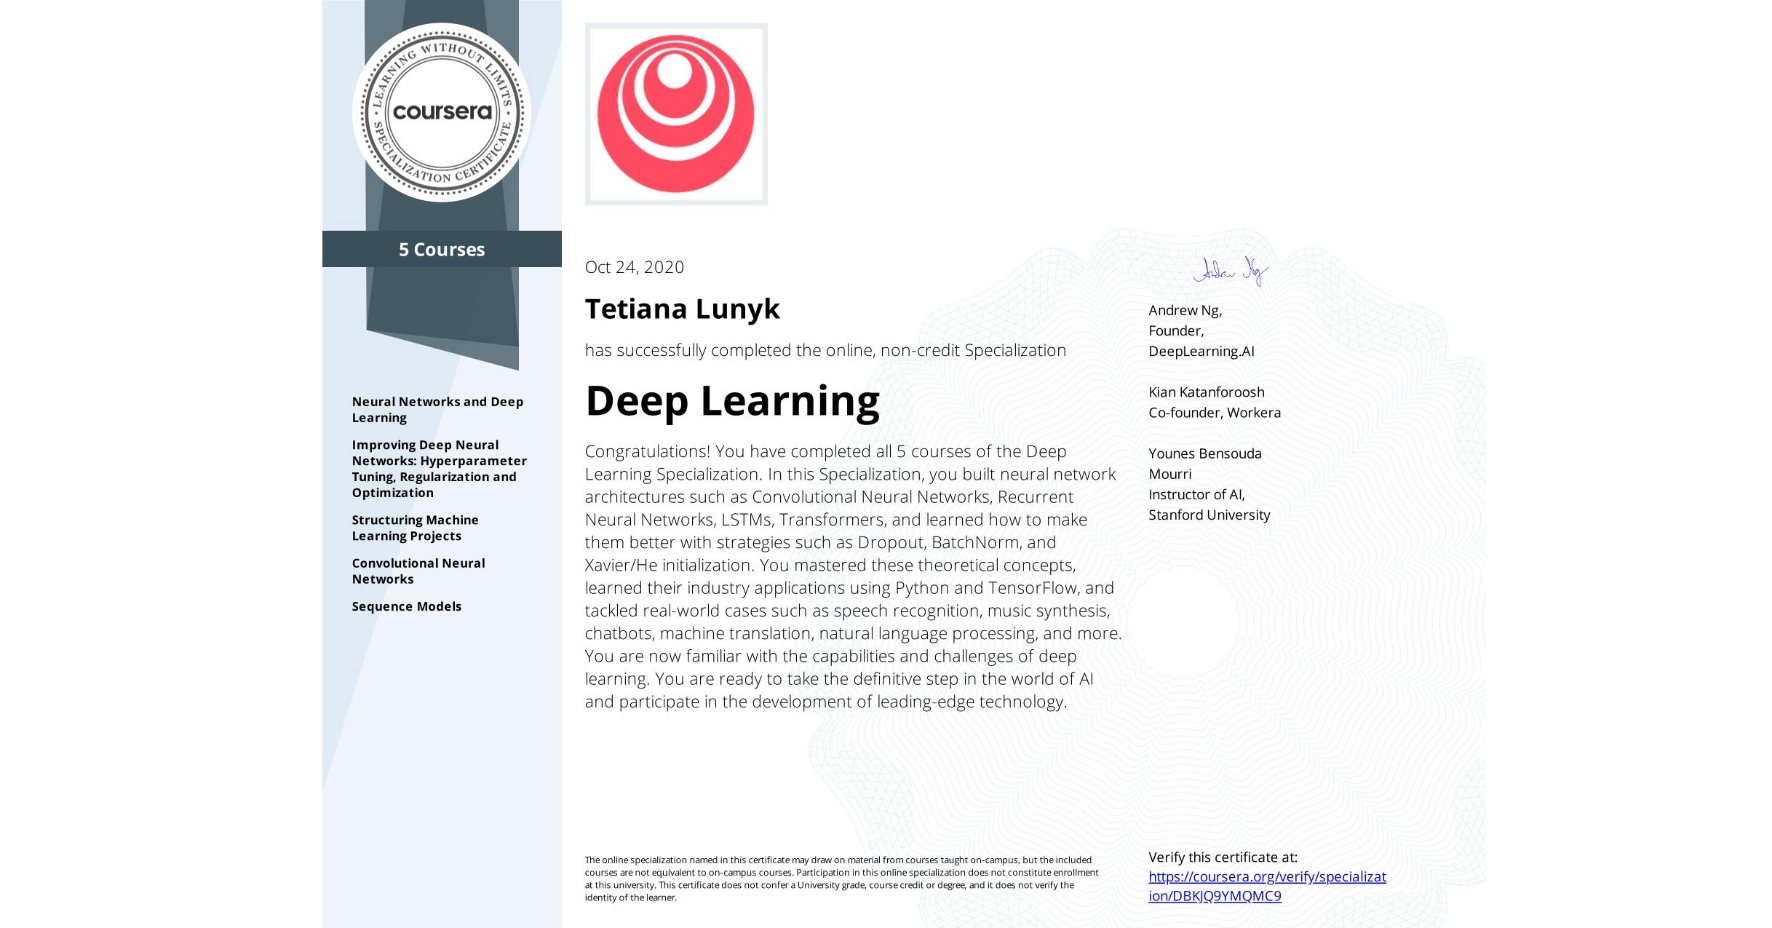 View certificate for Tetiana Lunyk, Deep Learning, offered through Coursera. The Deep Learning Specialization is designed to prepare learners to participate in the development of cutting-edge AI technology, and to understand the capability, the challenges, and the consequences of the rise of deep learning. Through five interconnected courses, learners develop a profound knowledge of the hottest AI algorithms, mastering deep learning from its foundations (neural networks) to its industry applications (Computer Vision, Natural Language Processing, Speech Recognition, etc.).